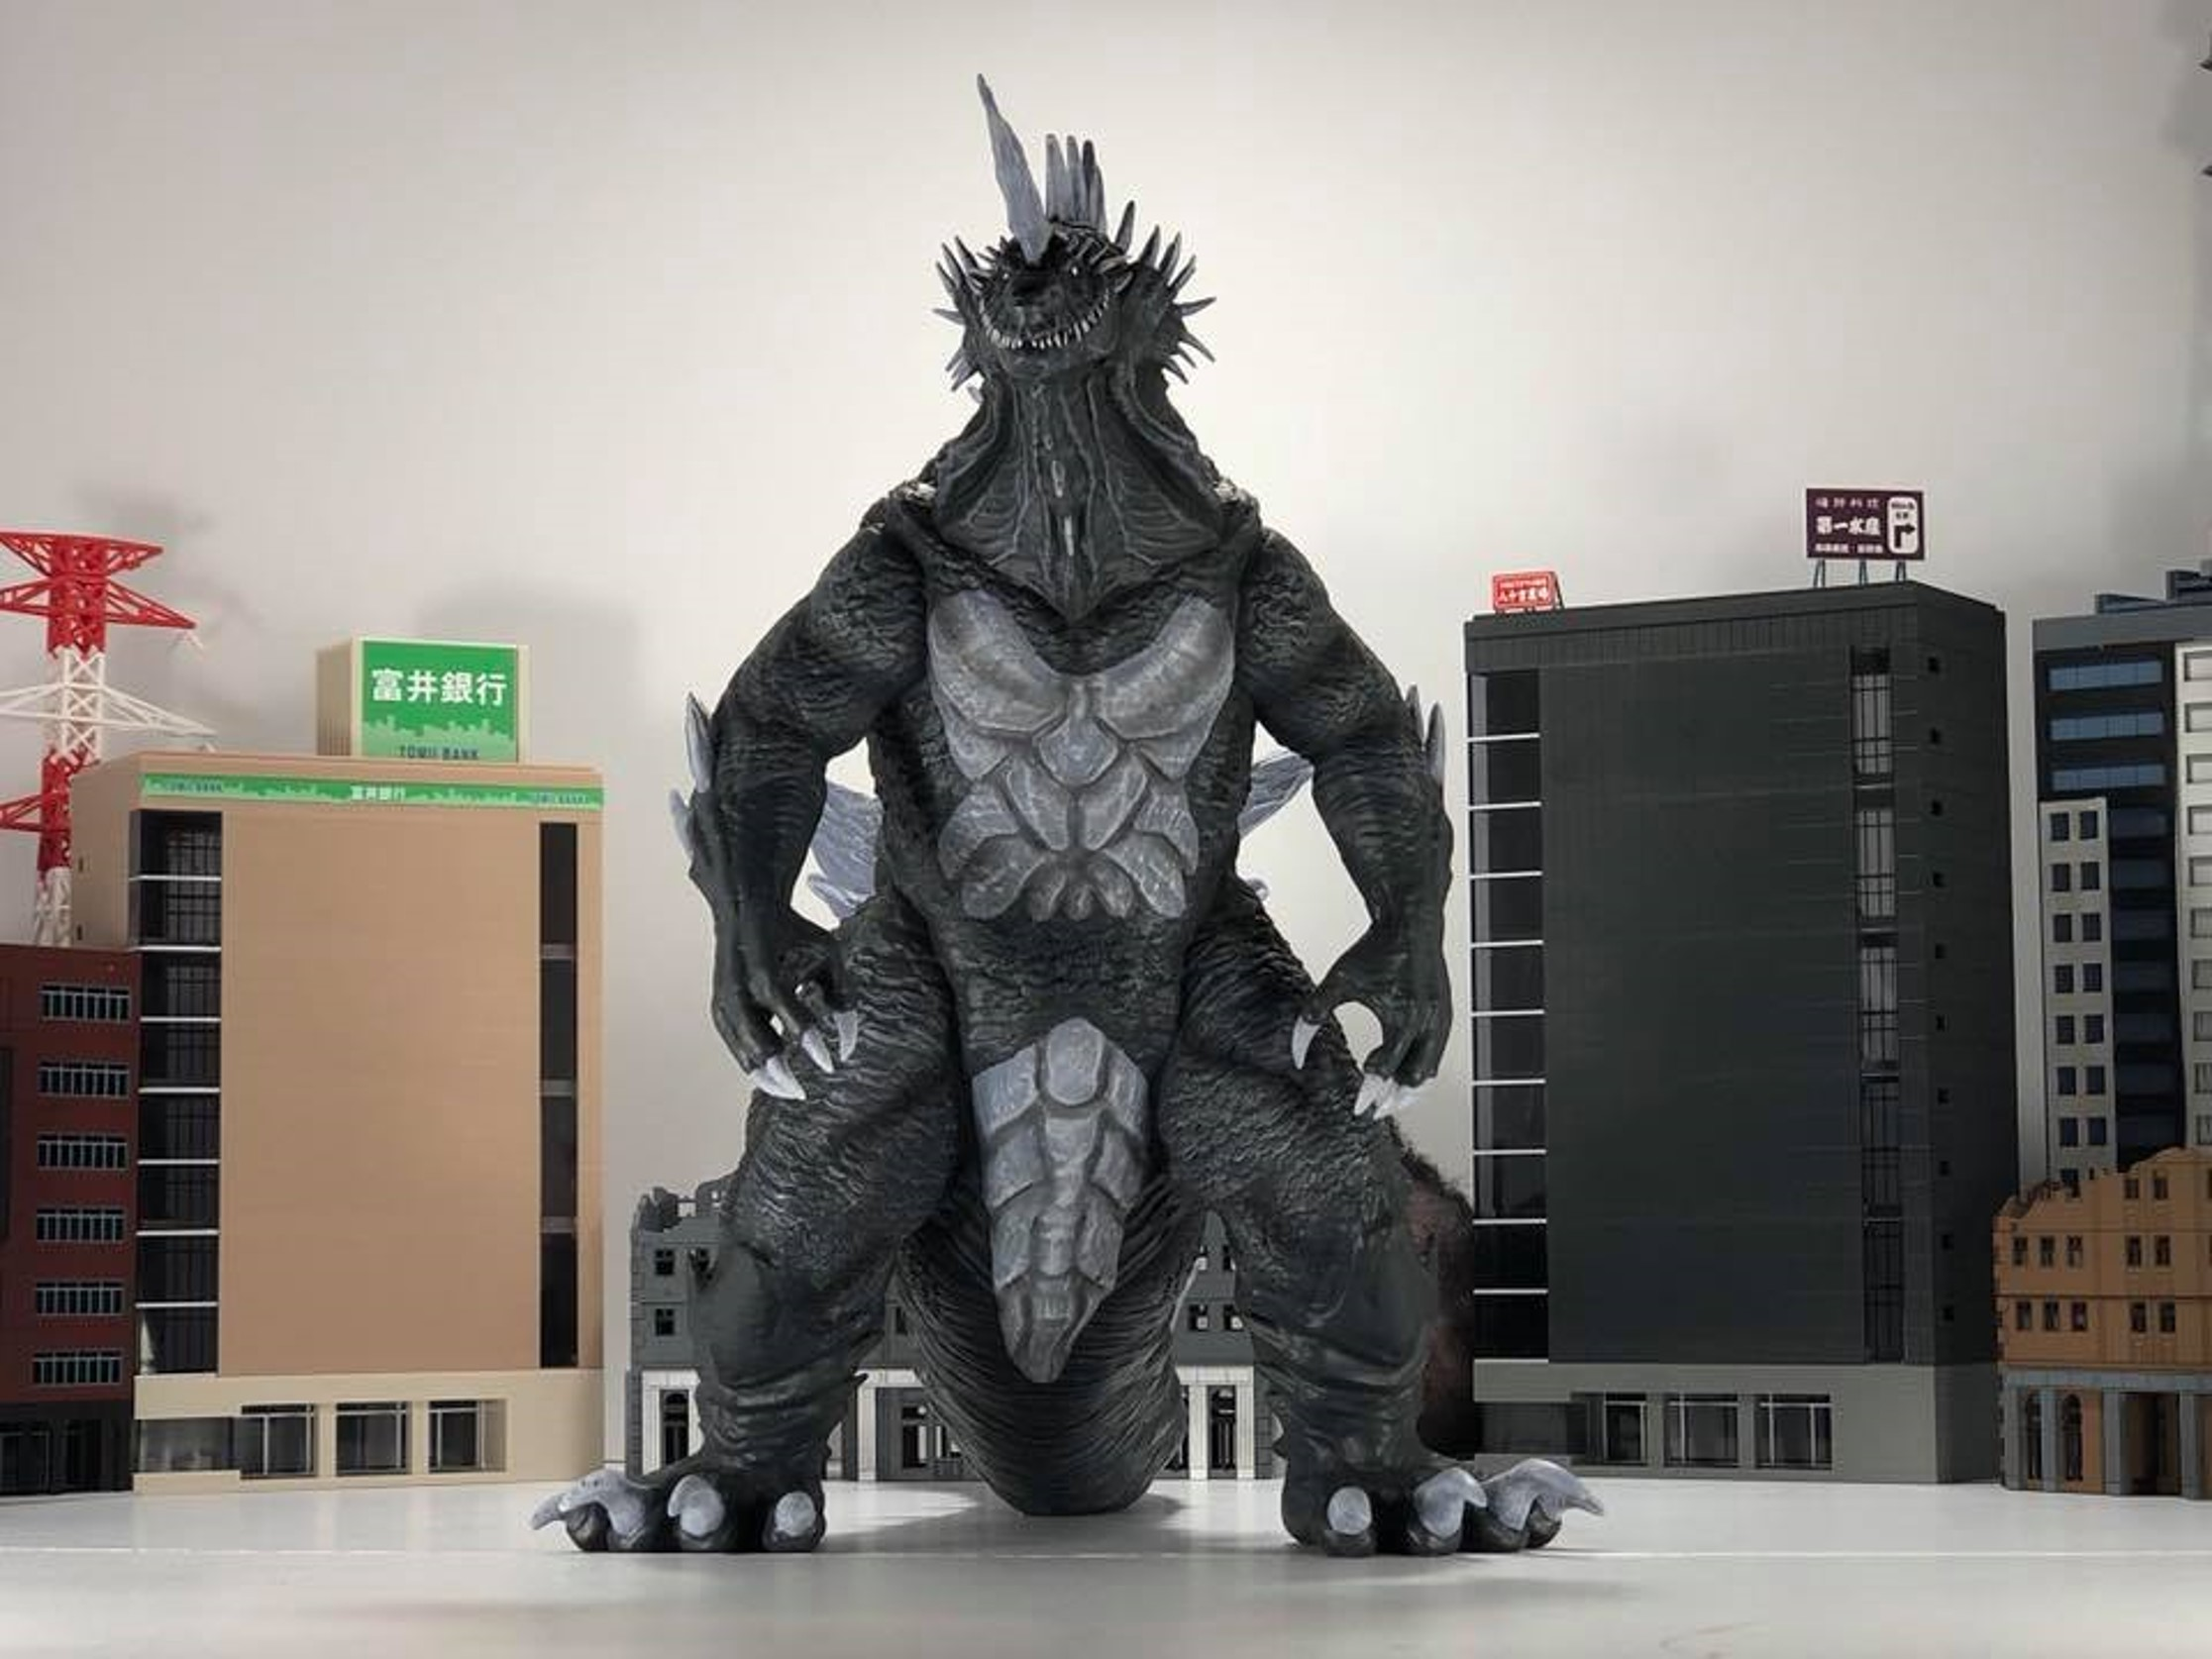 30 CM Kaiju Monster By Titanic Creations